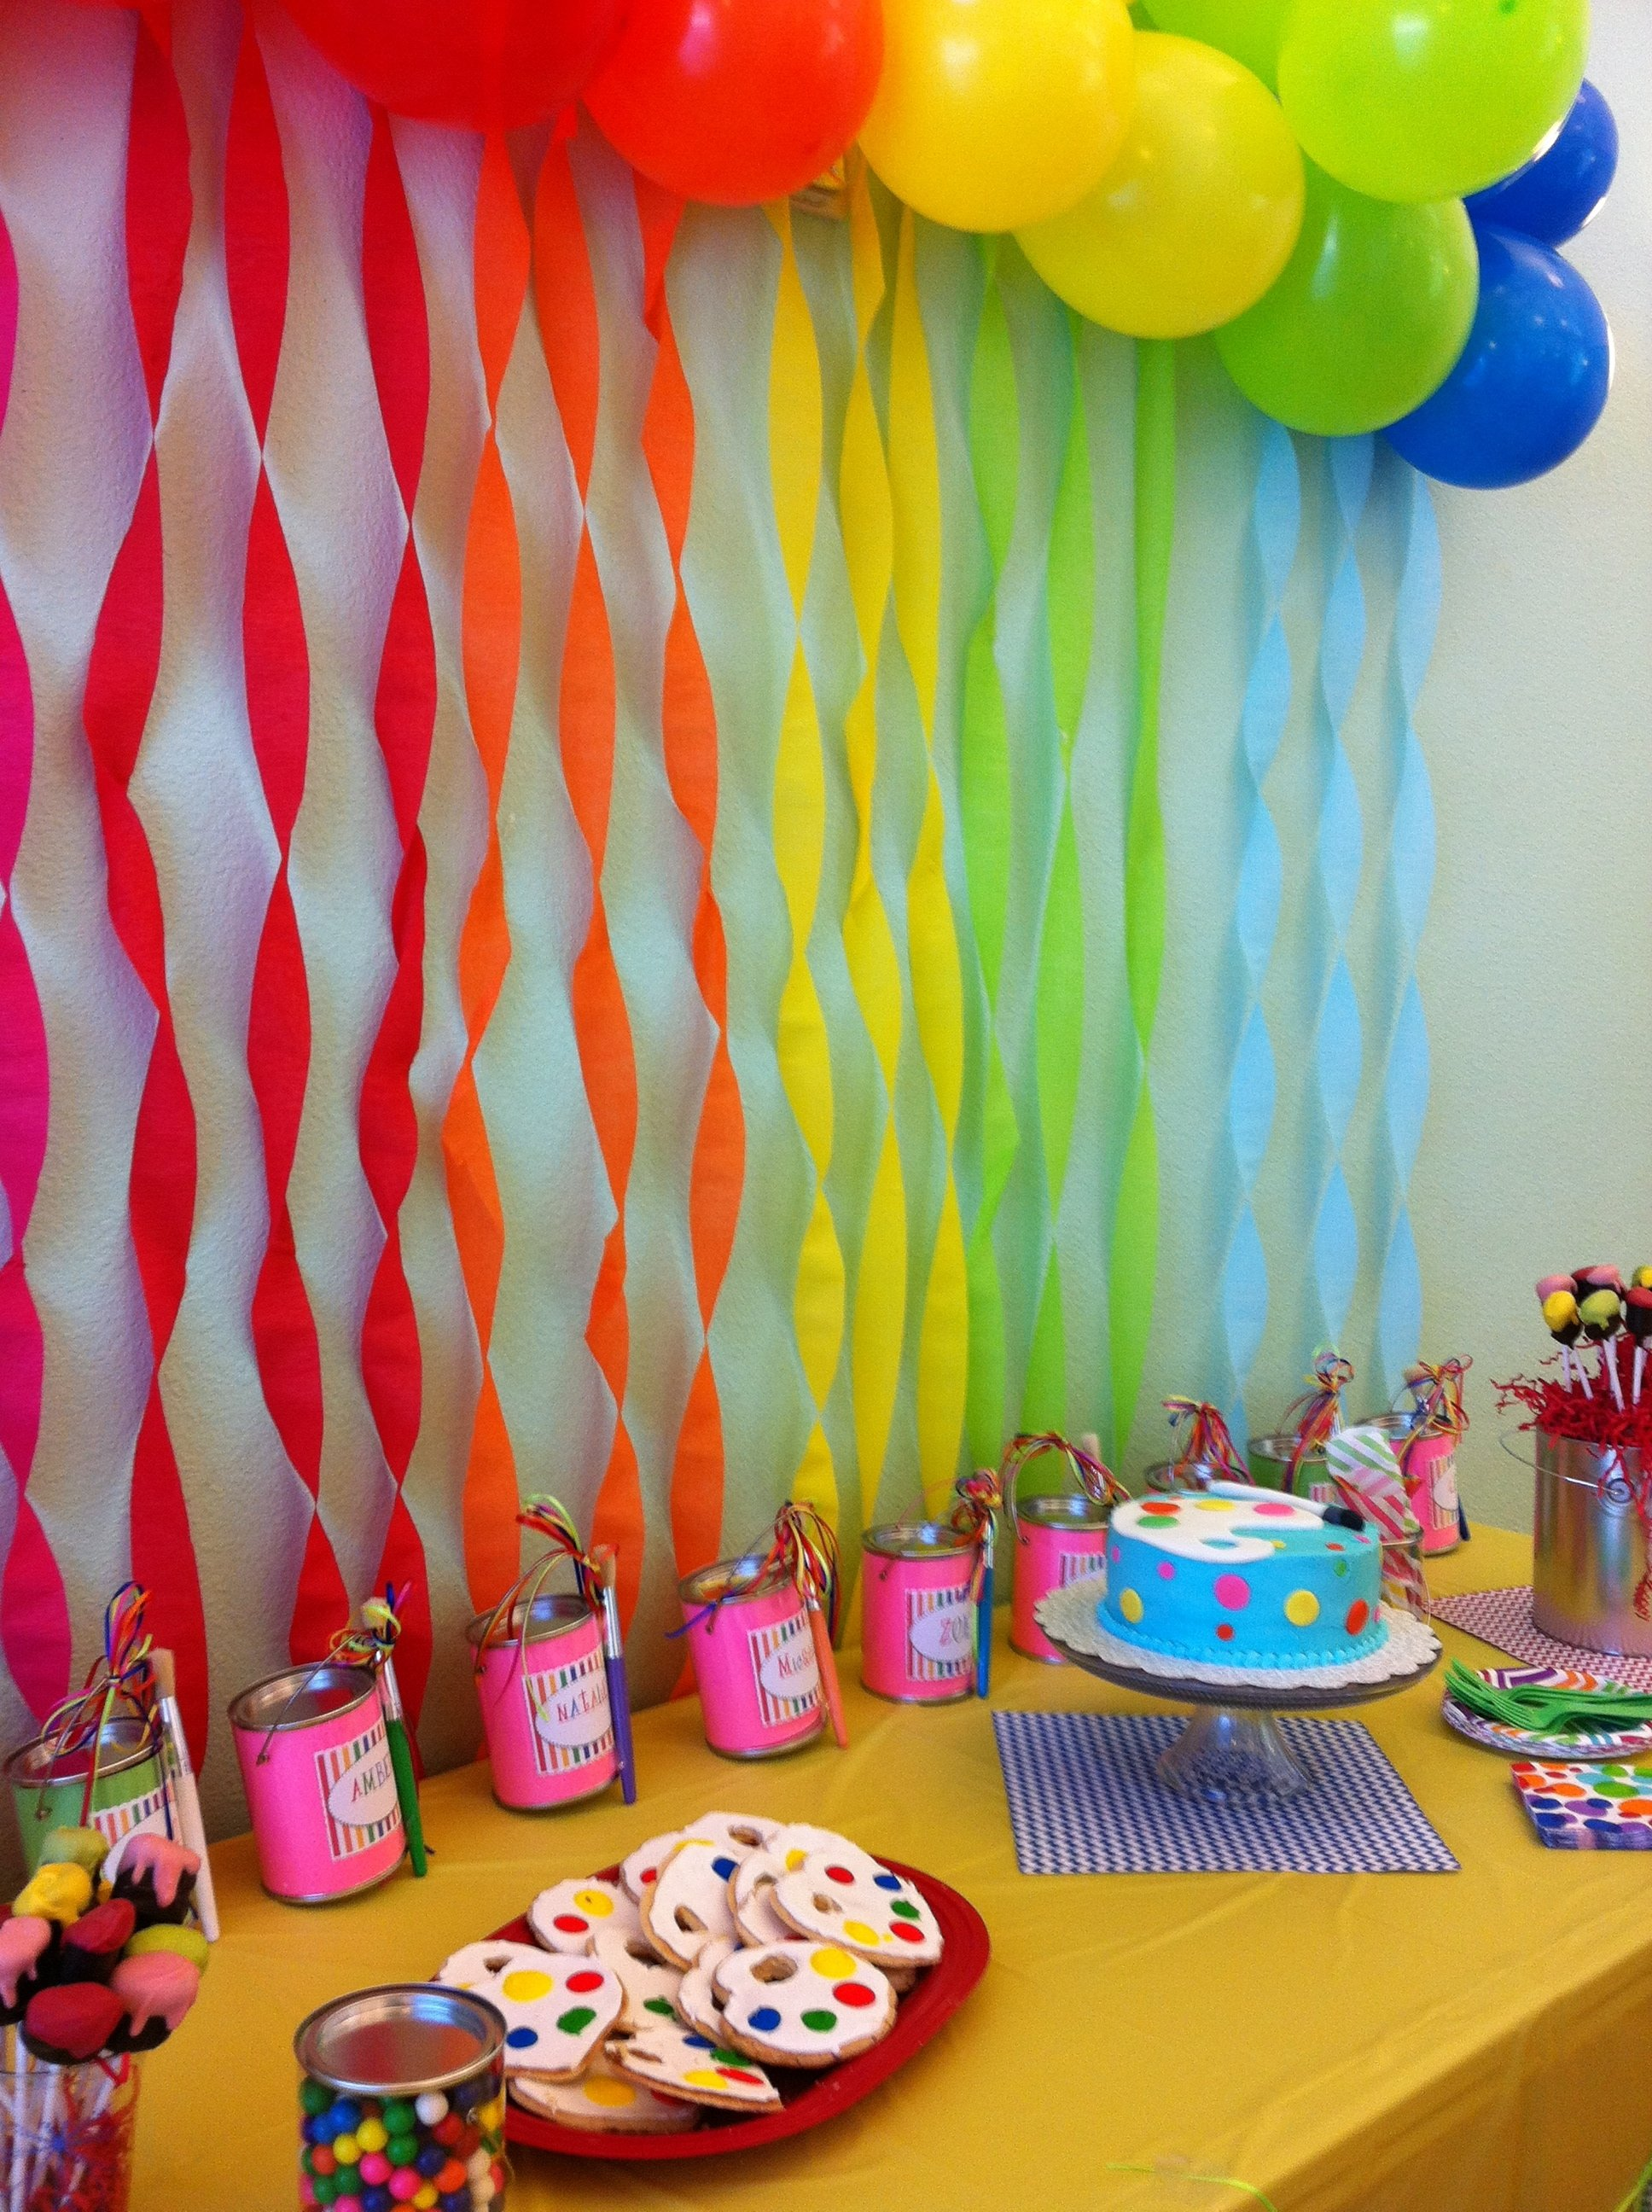 10 Stylish Birthday Party Ideas For 8 Year Old Girls 8 year old girl birthday art party art party pinterest art 20